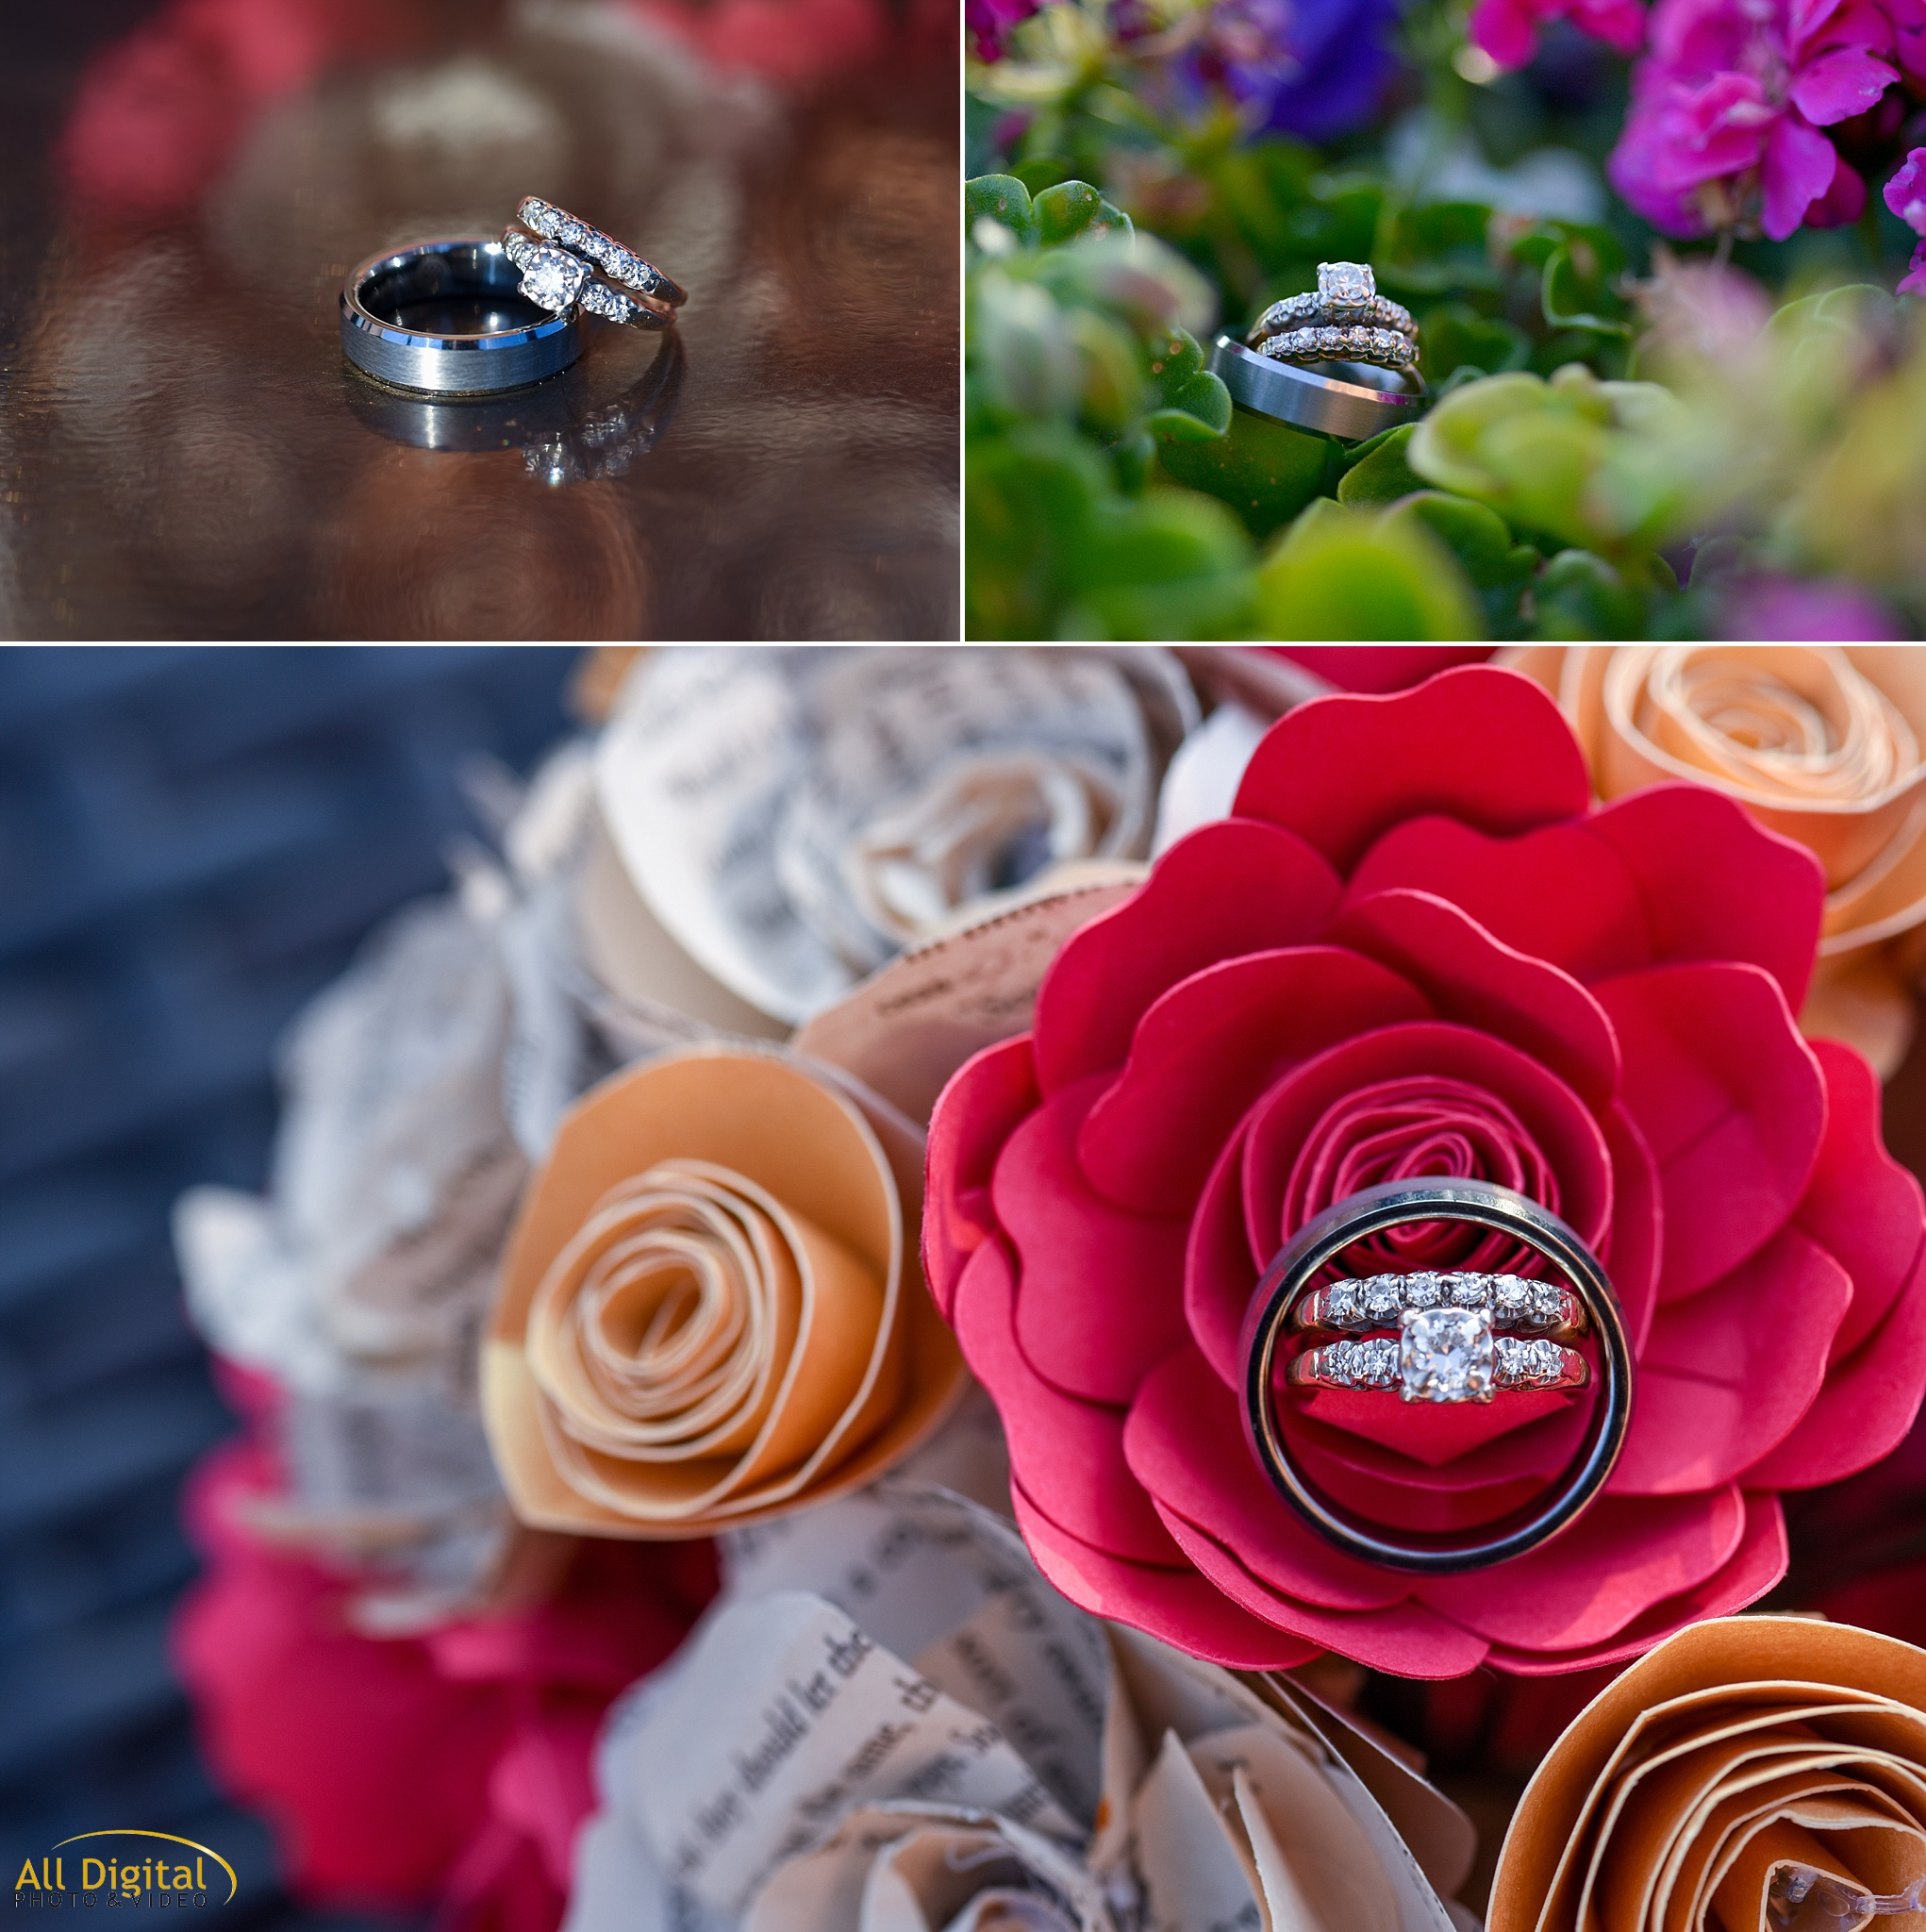 Ring Details at the Golden Hotel photographed by All Digital Studios.